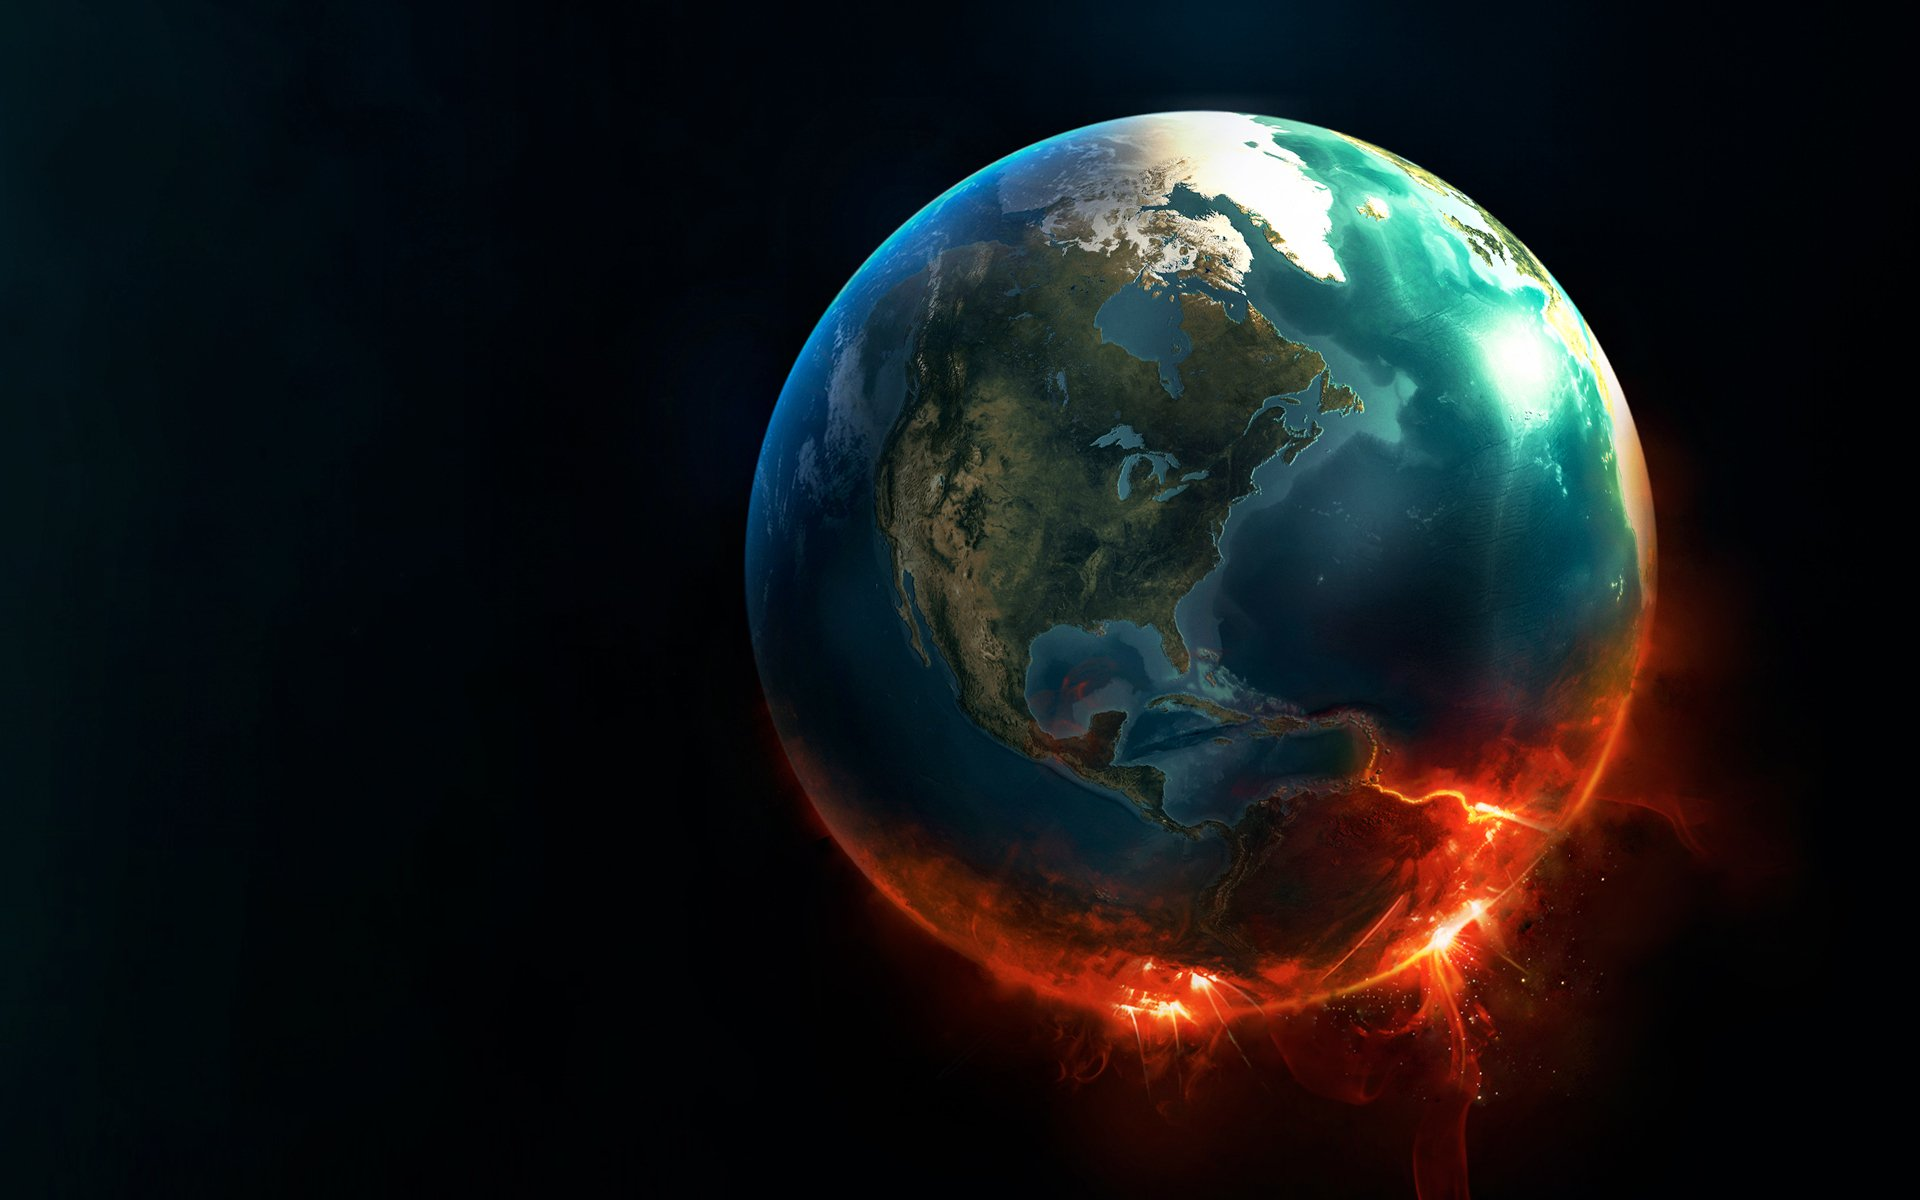 CGI - Real World  Fire Earth Space Wallpaper